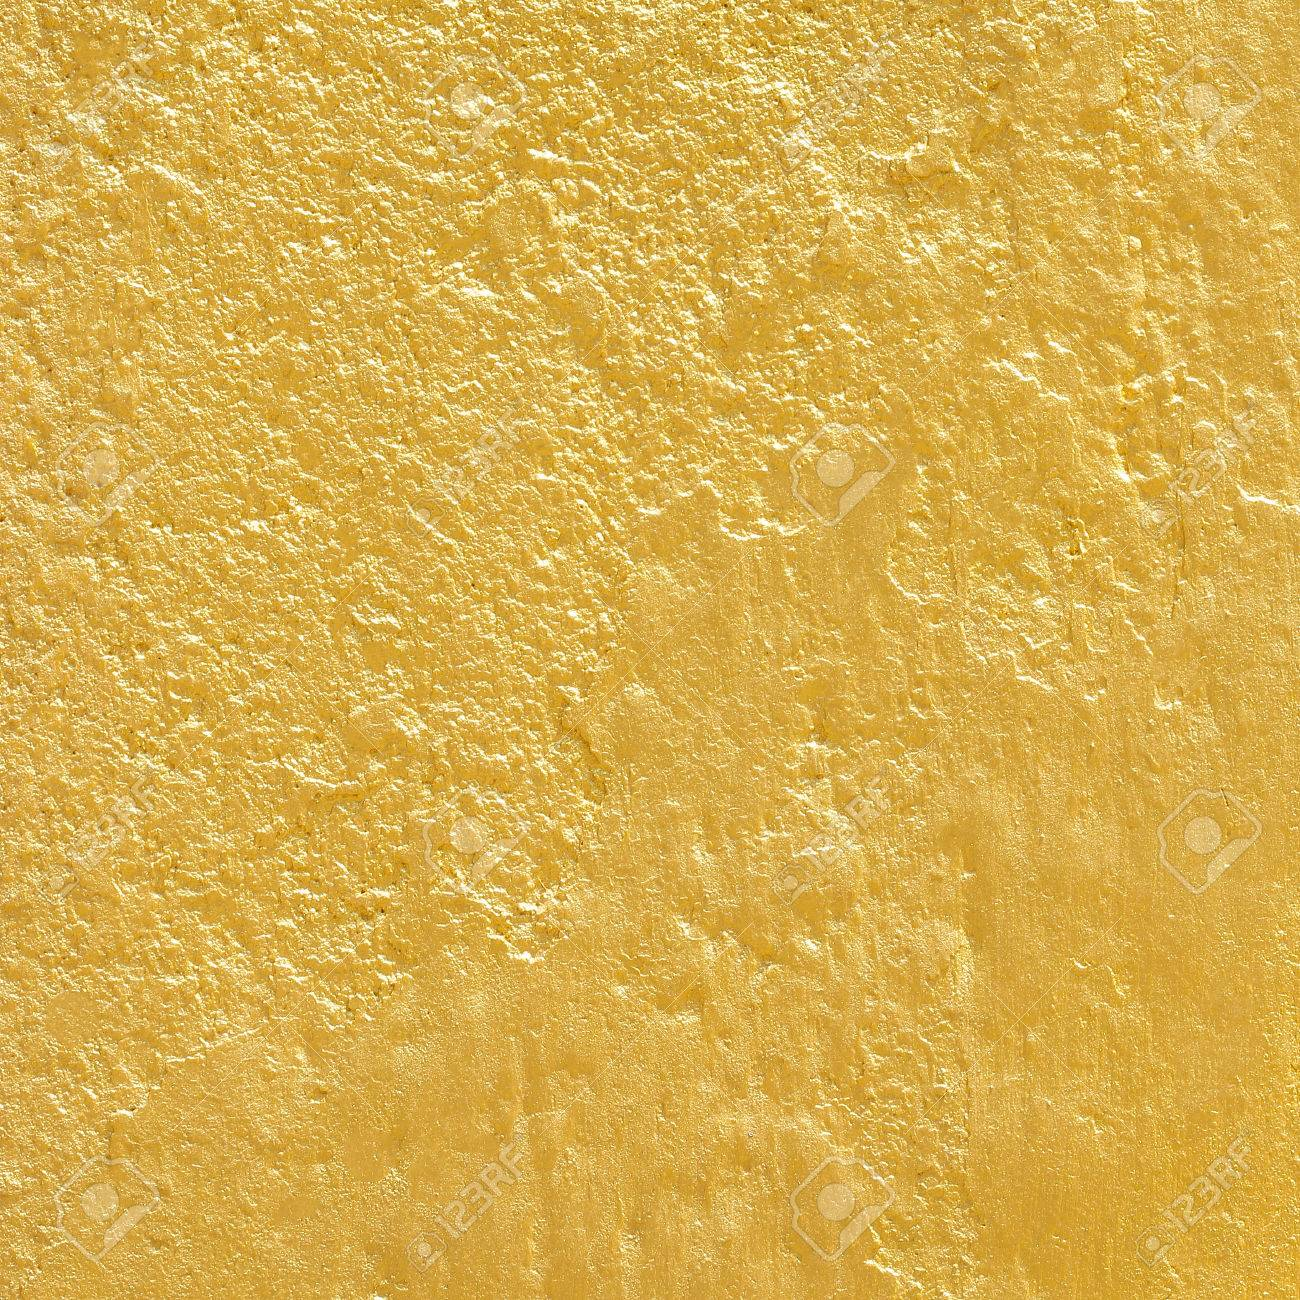 Gold Paint On Rough Cement Wall Texture. Gold Background Stock ...